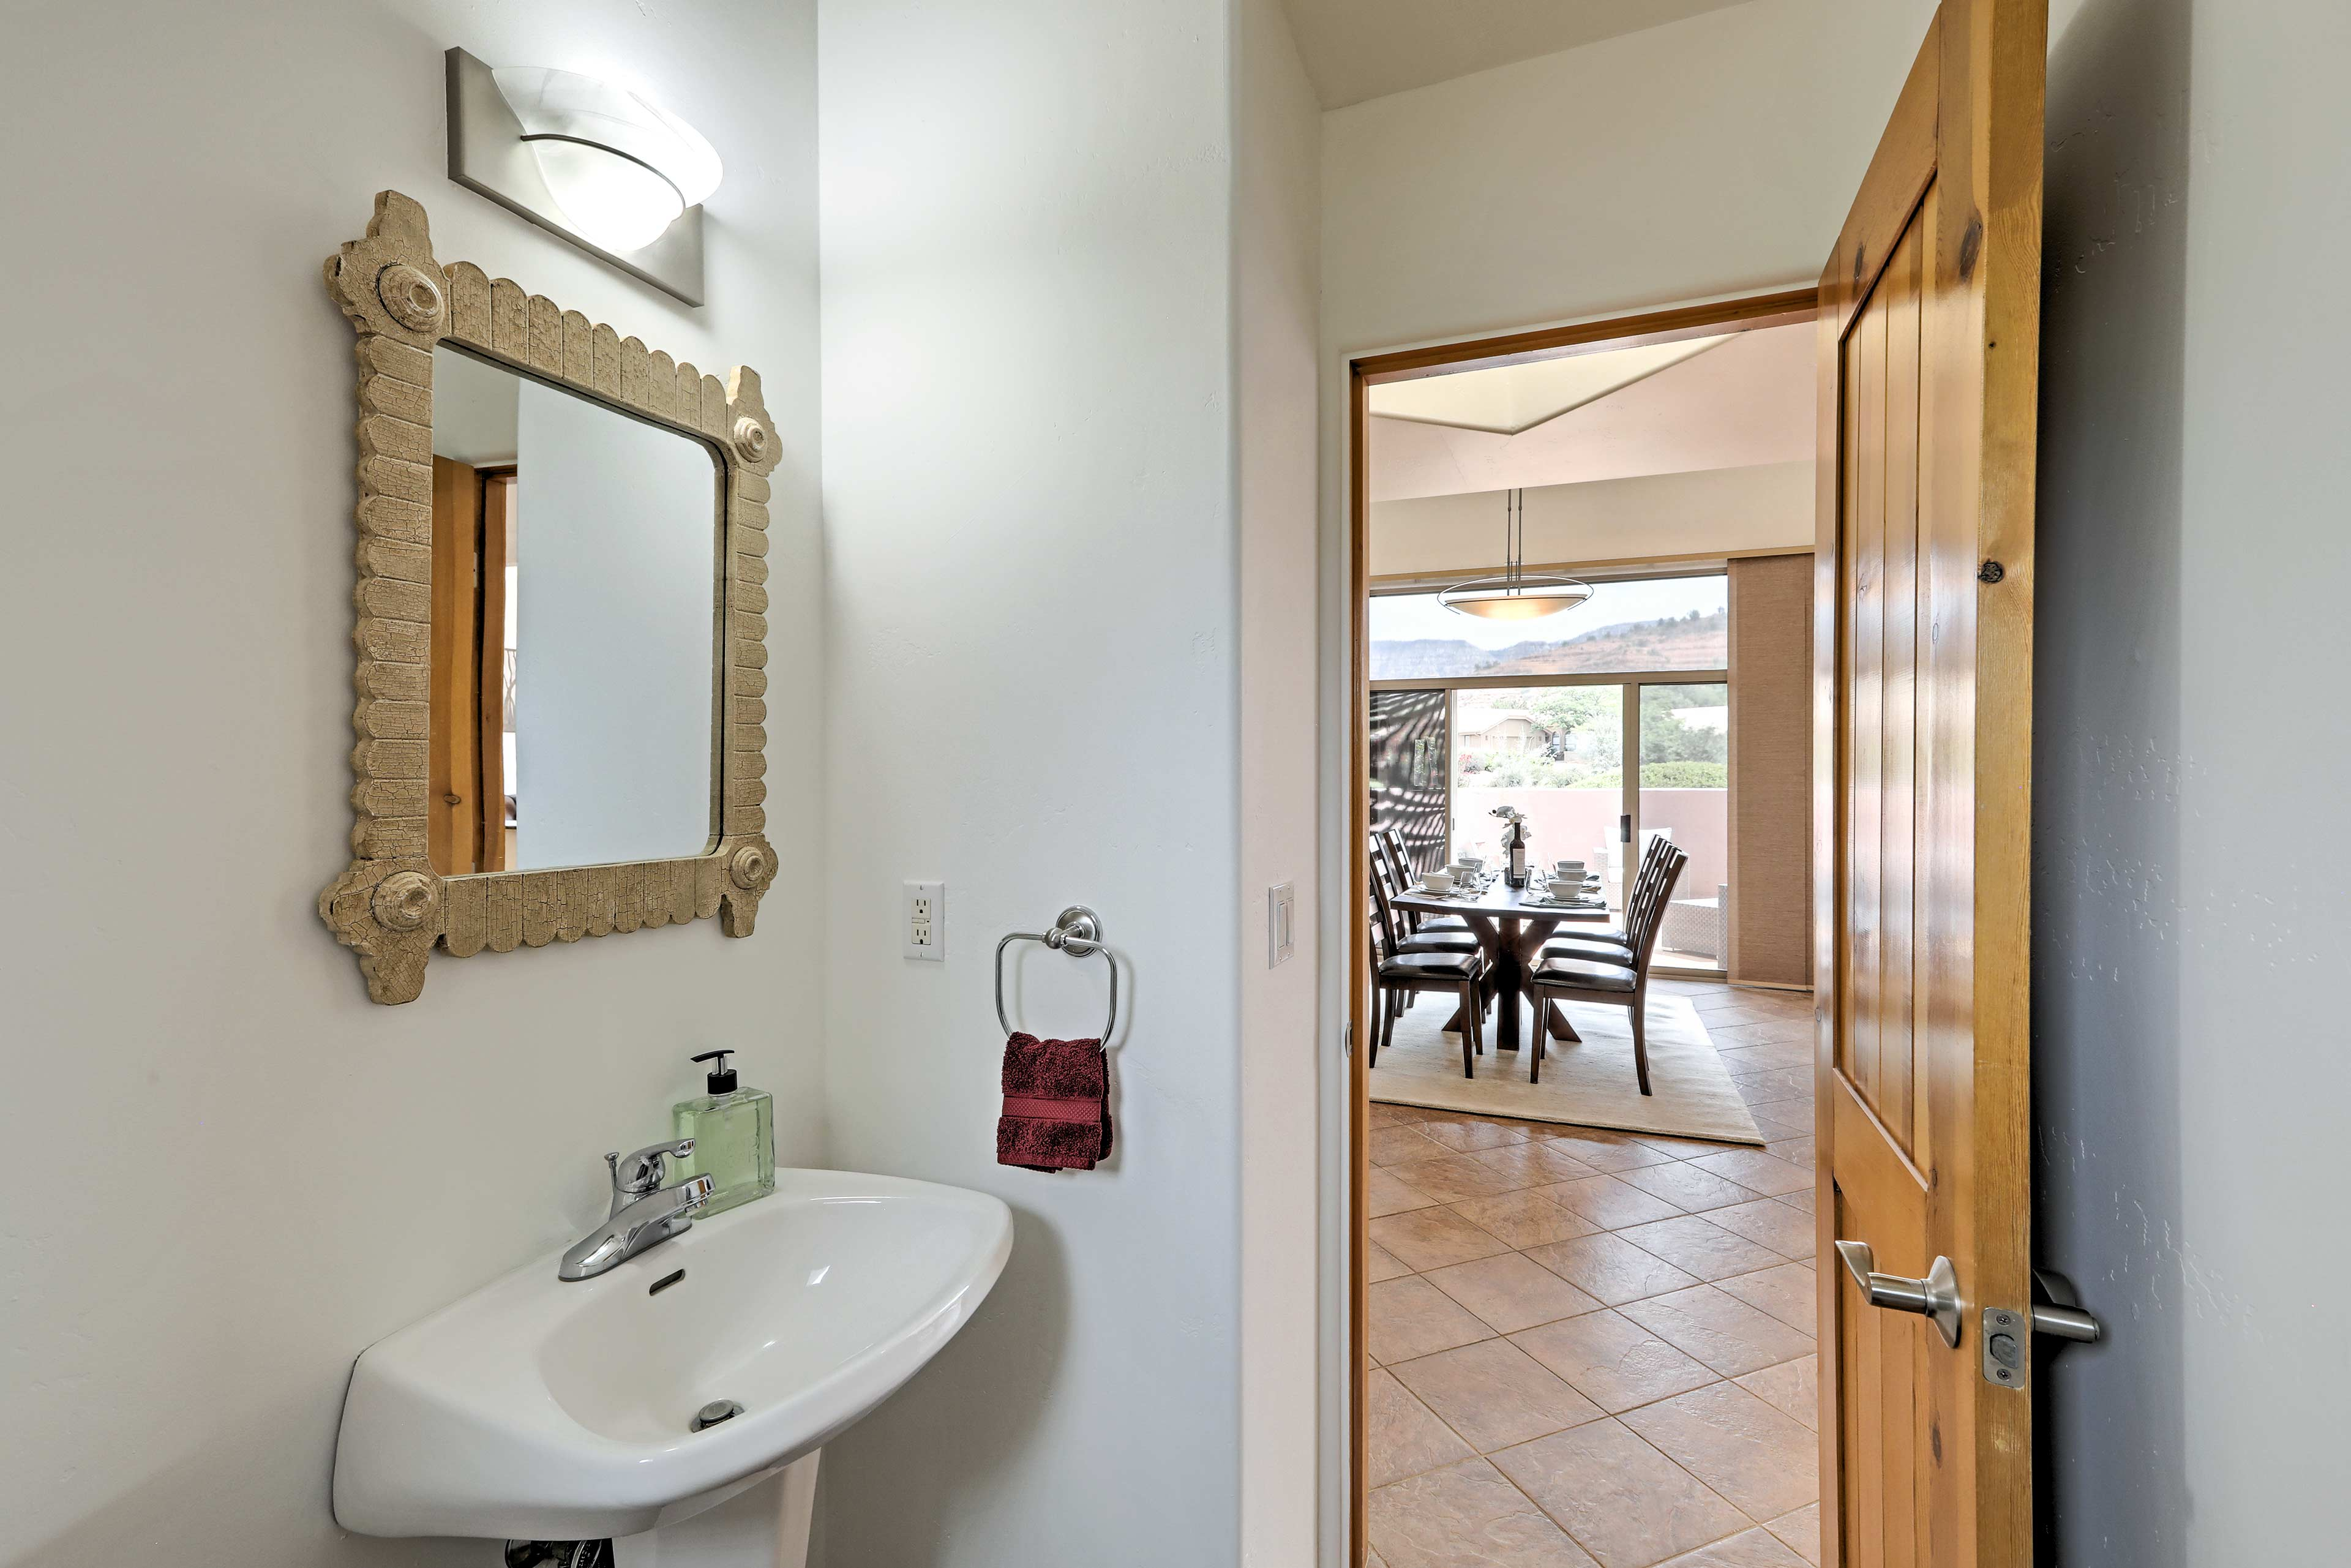 The house contains 2.5 bathrooms total.